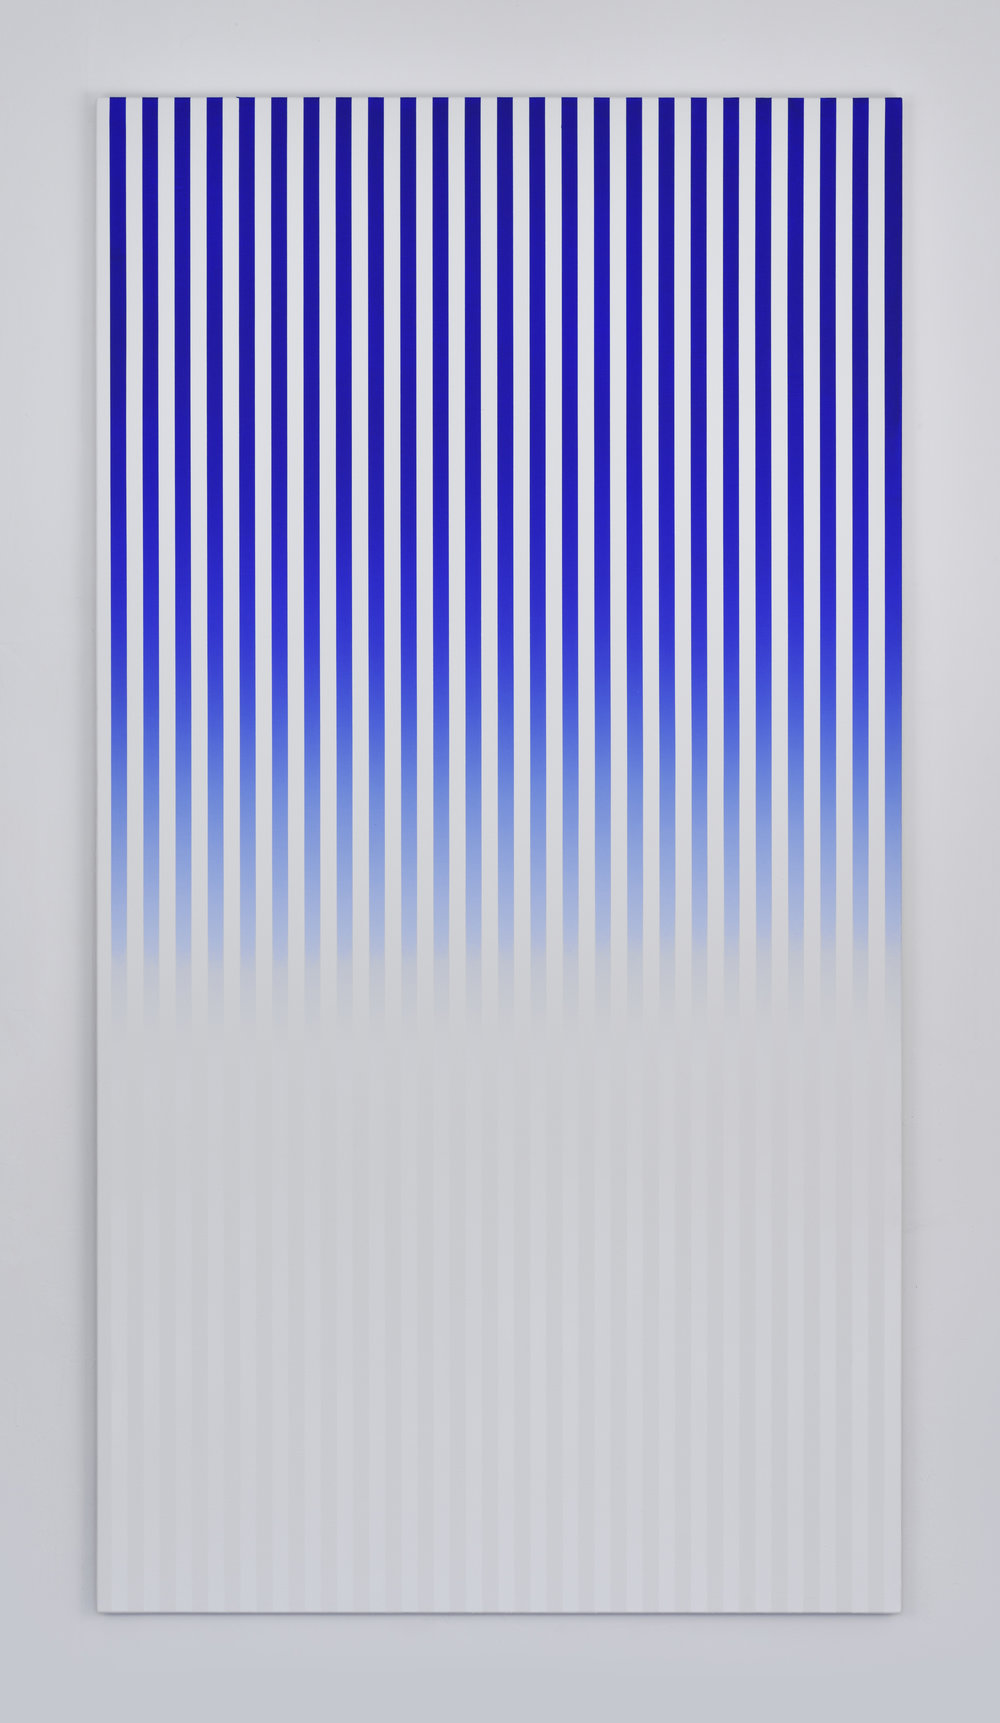 Slow Motion , 2016 acrylic on canvas 190 x 110 cm - (74 13/16 x 43 5/16 in)